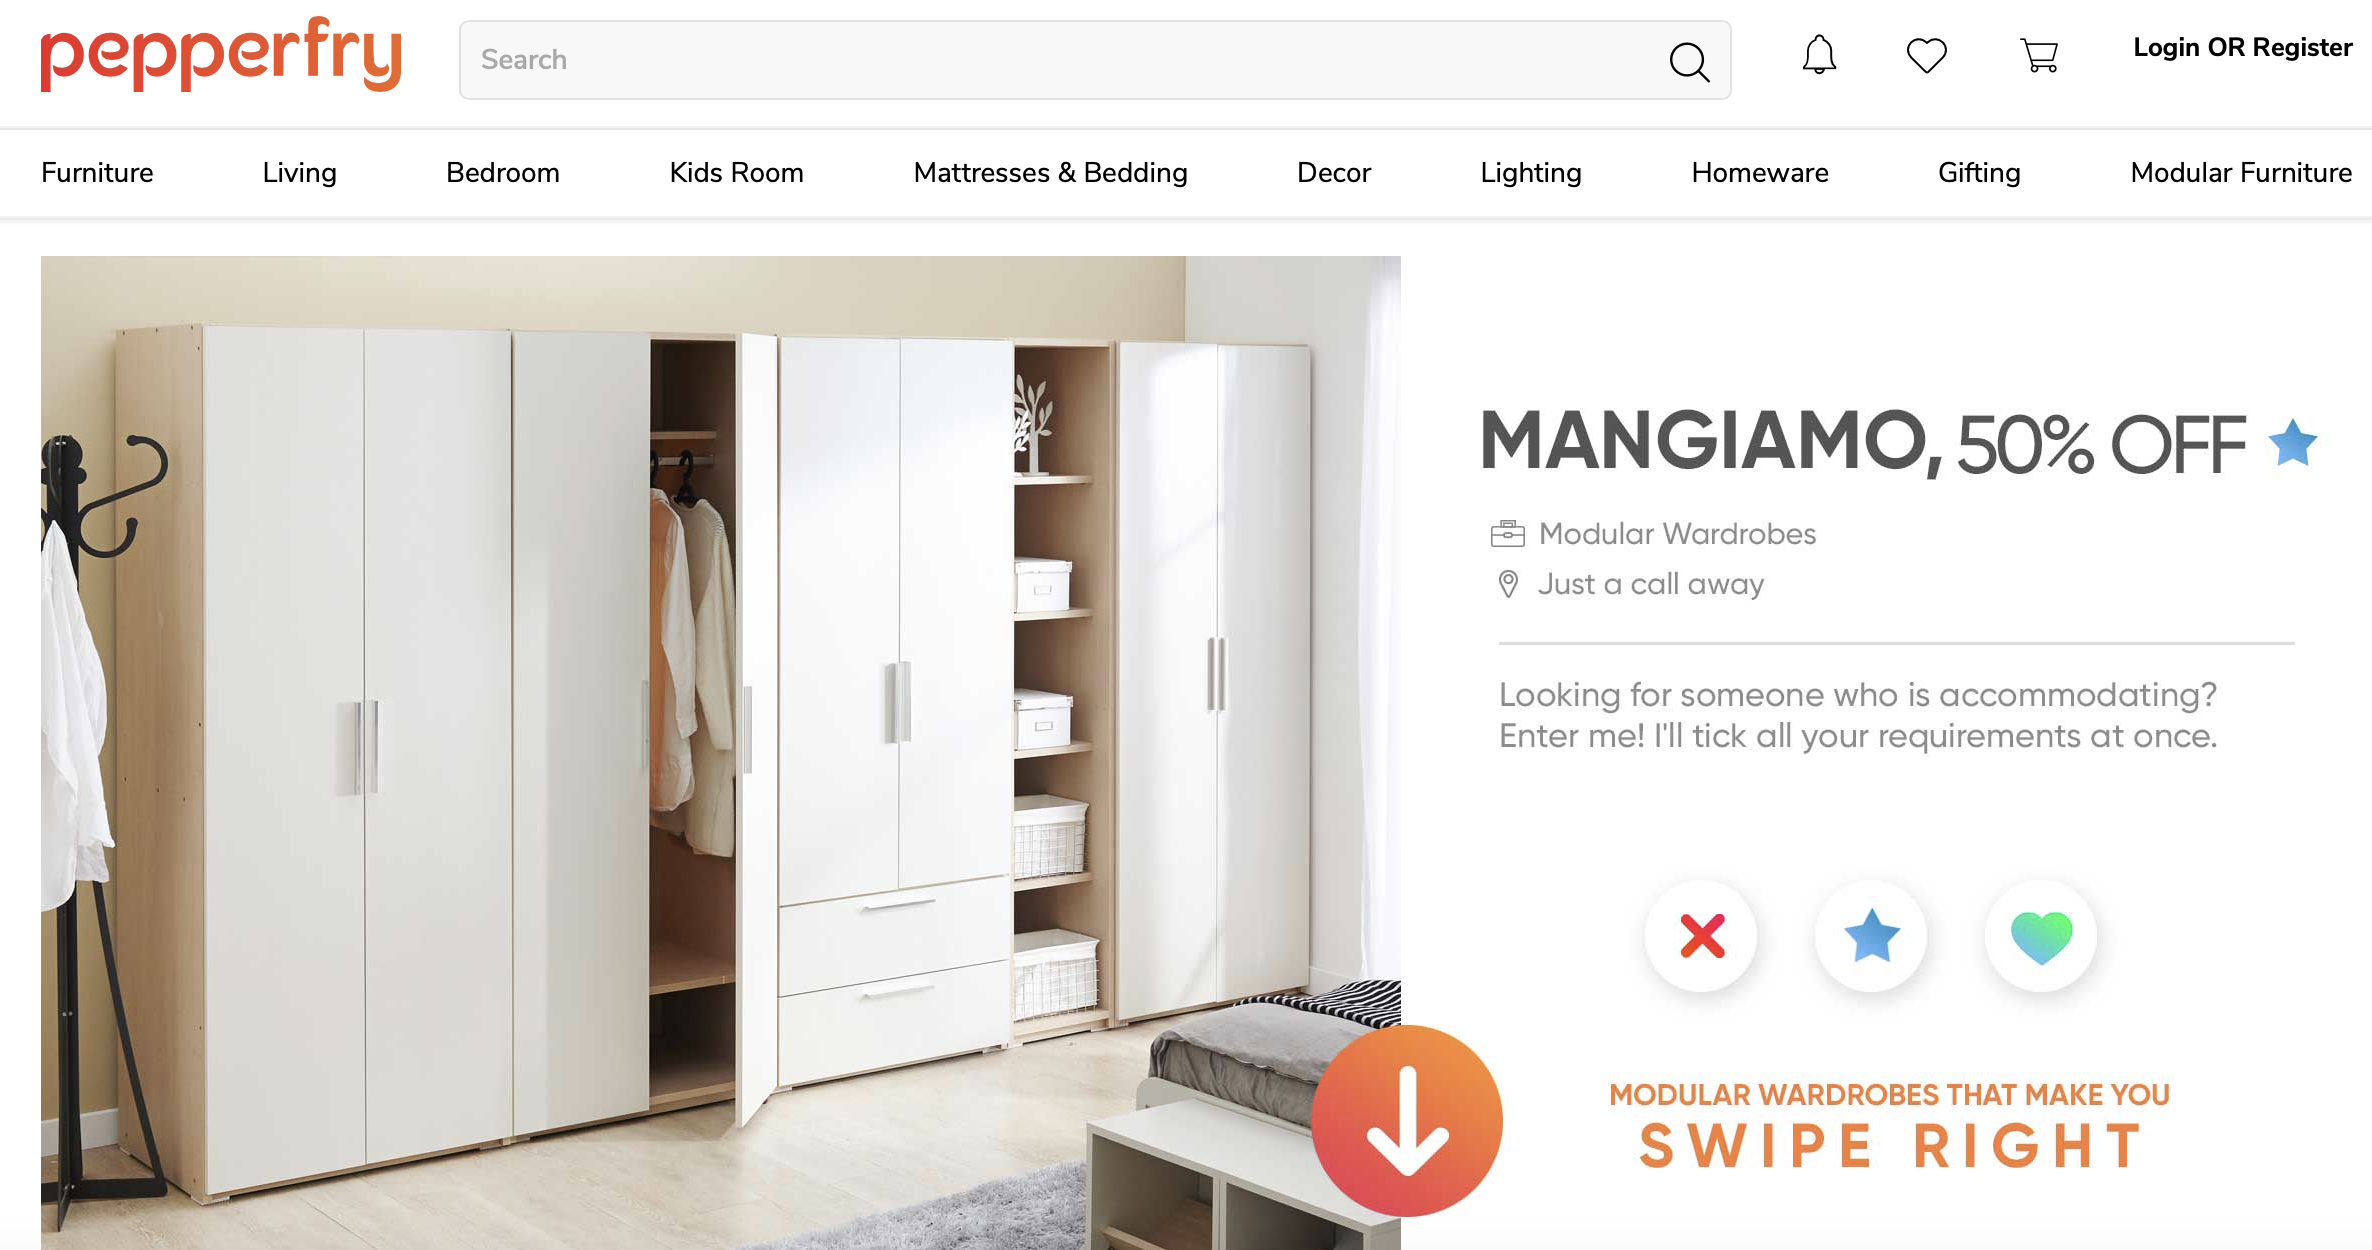 Indian online furniture startup 'Pepperfry' raises $ 40 million in Series F funding